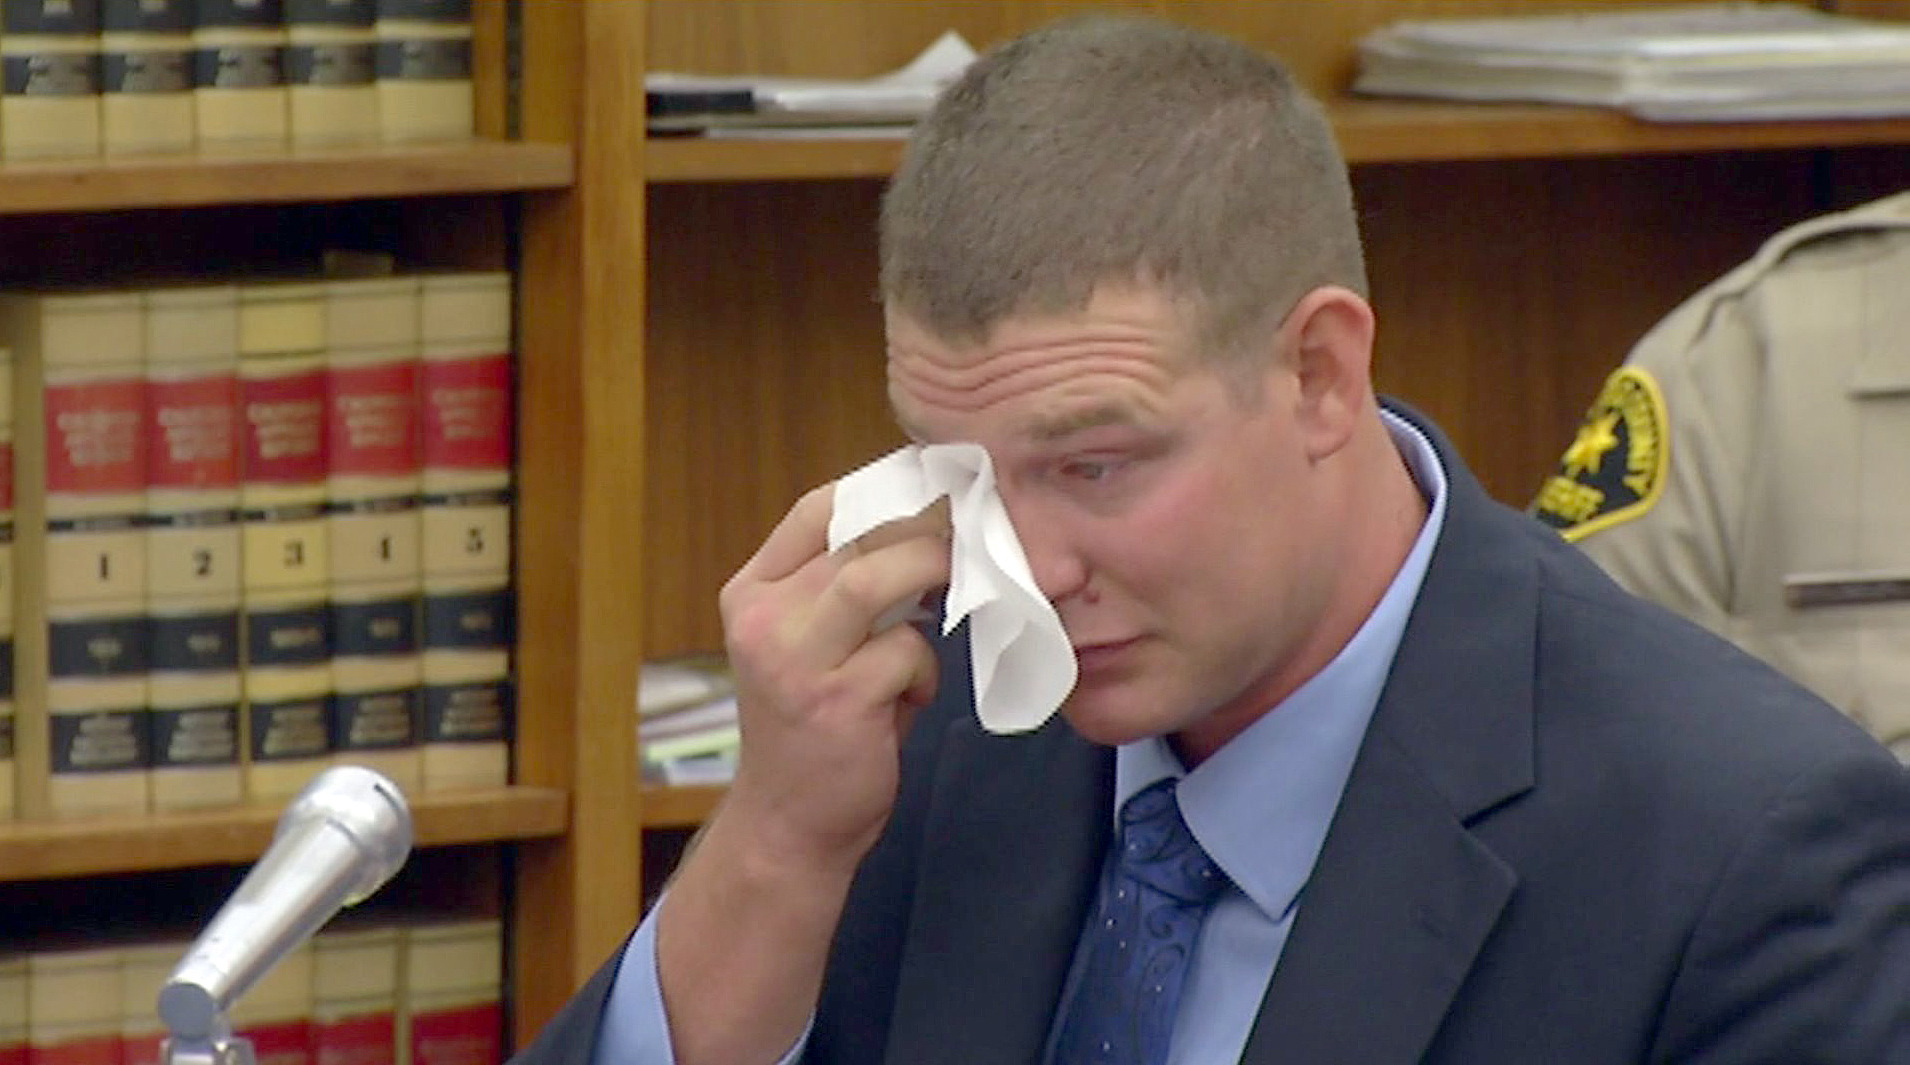 Christopher Hays Cries at Sentencing